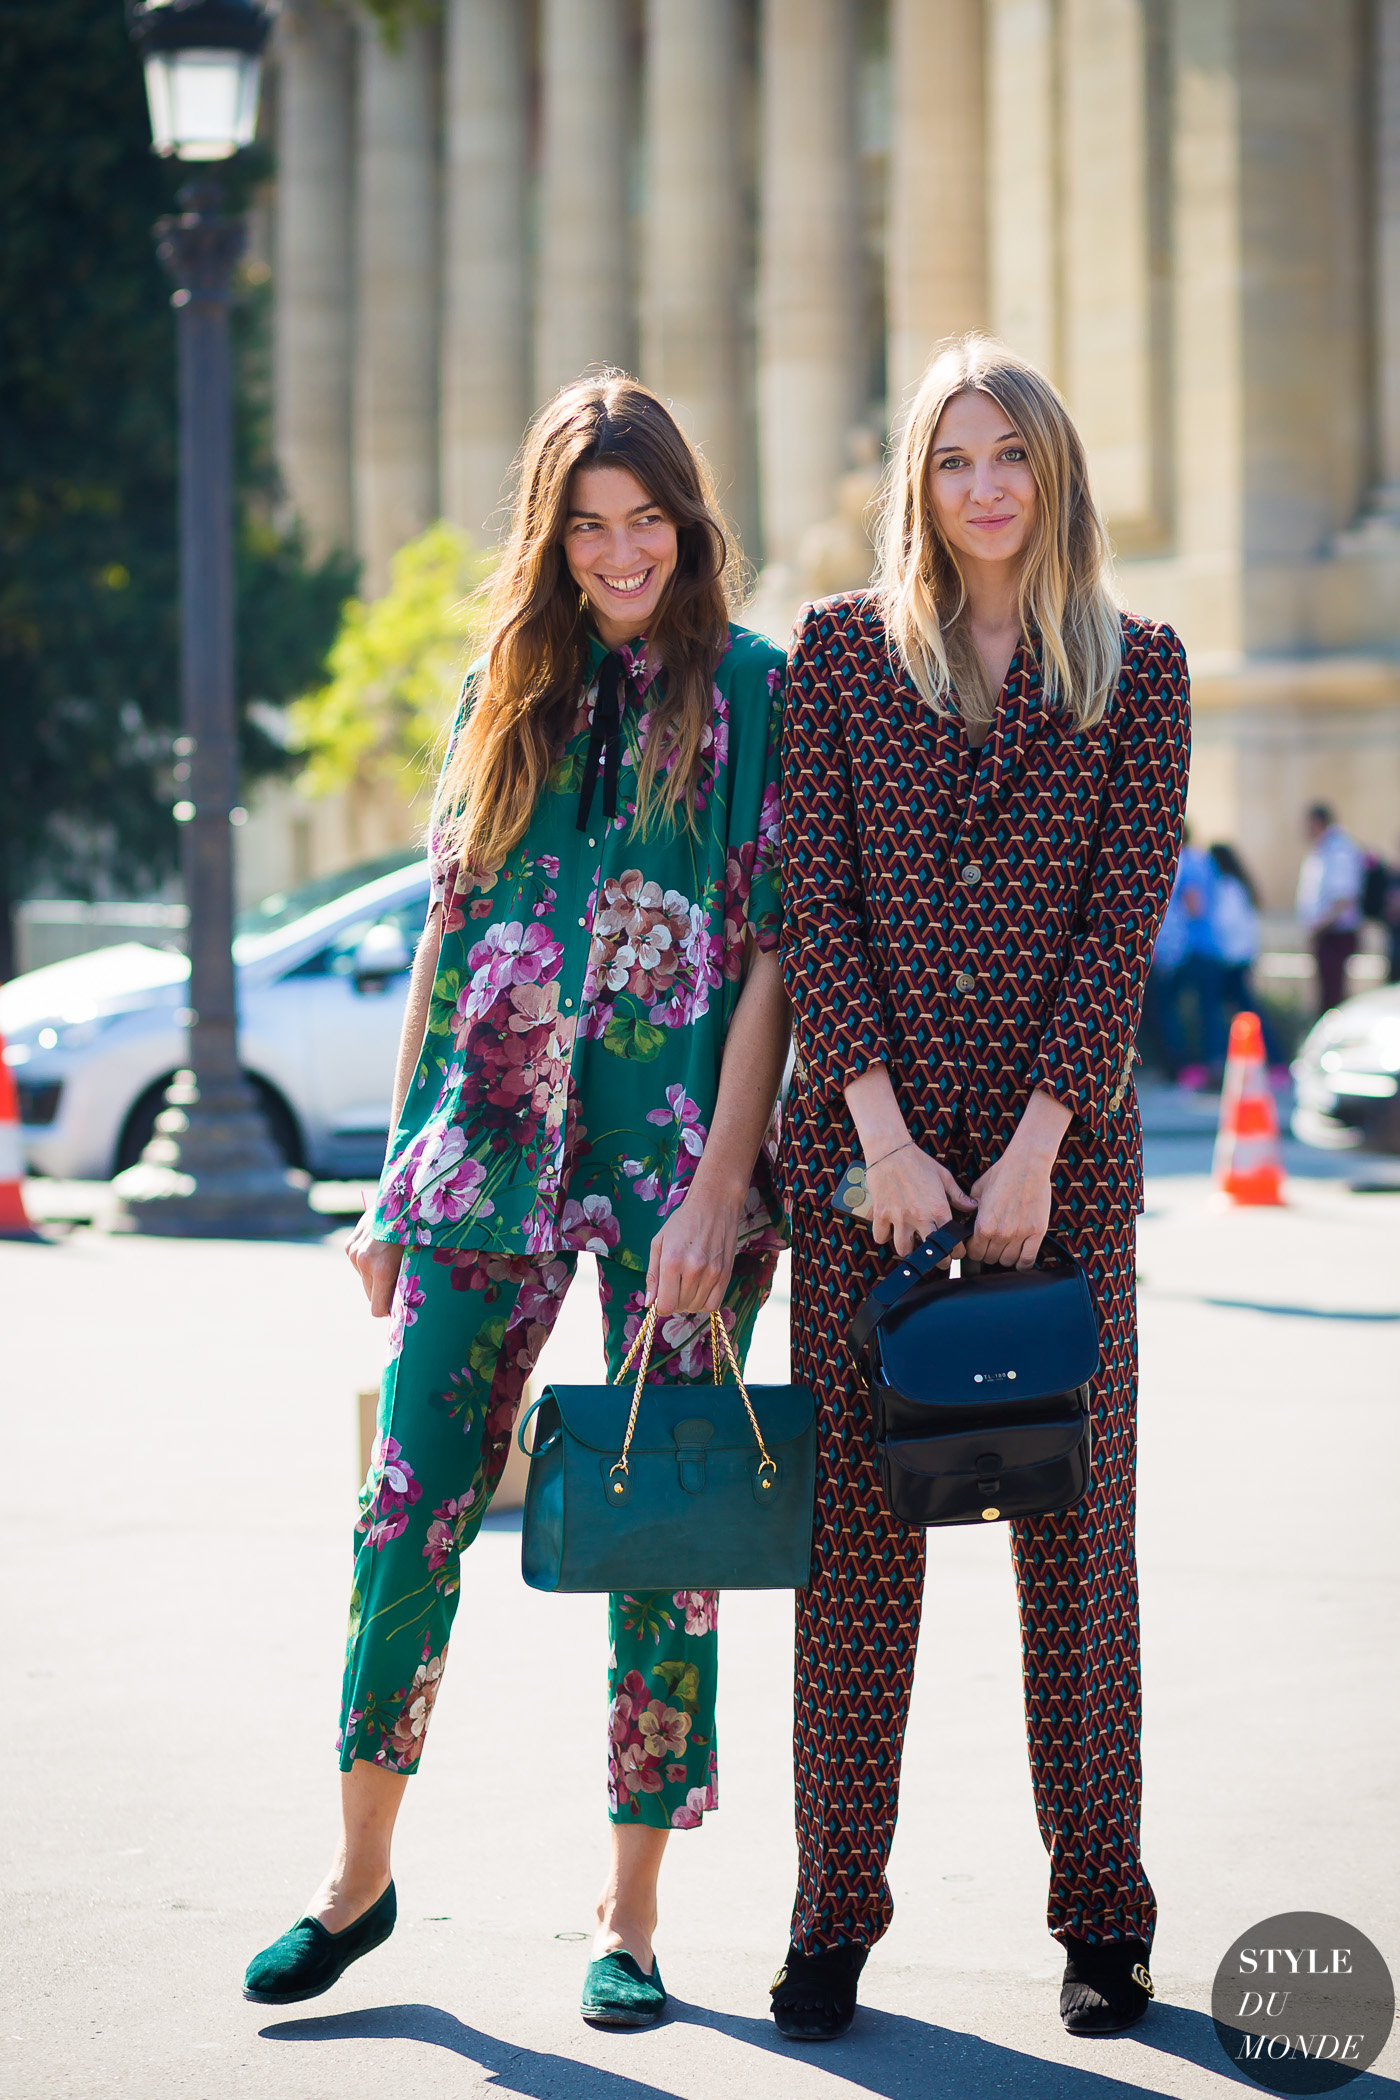 Tine Peduzzi and Luisa Orsini Street Style Street Fashion Streetsnaps by STYLEDUMONDE Street Style Fashion Photography